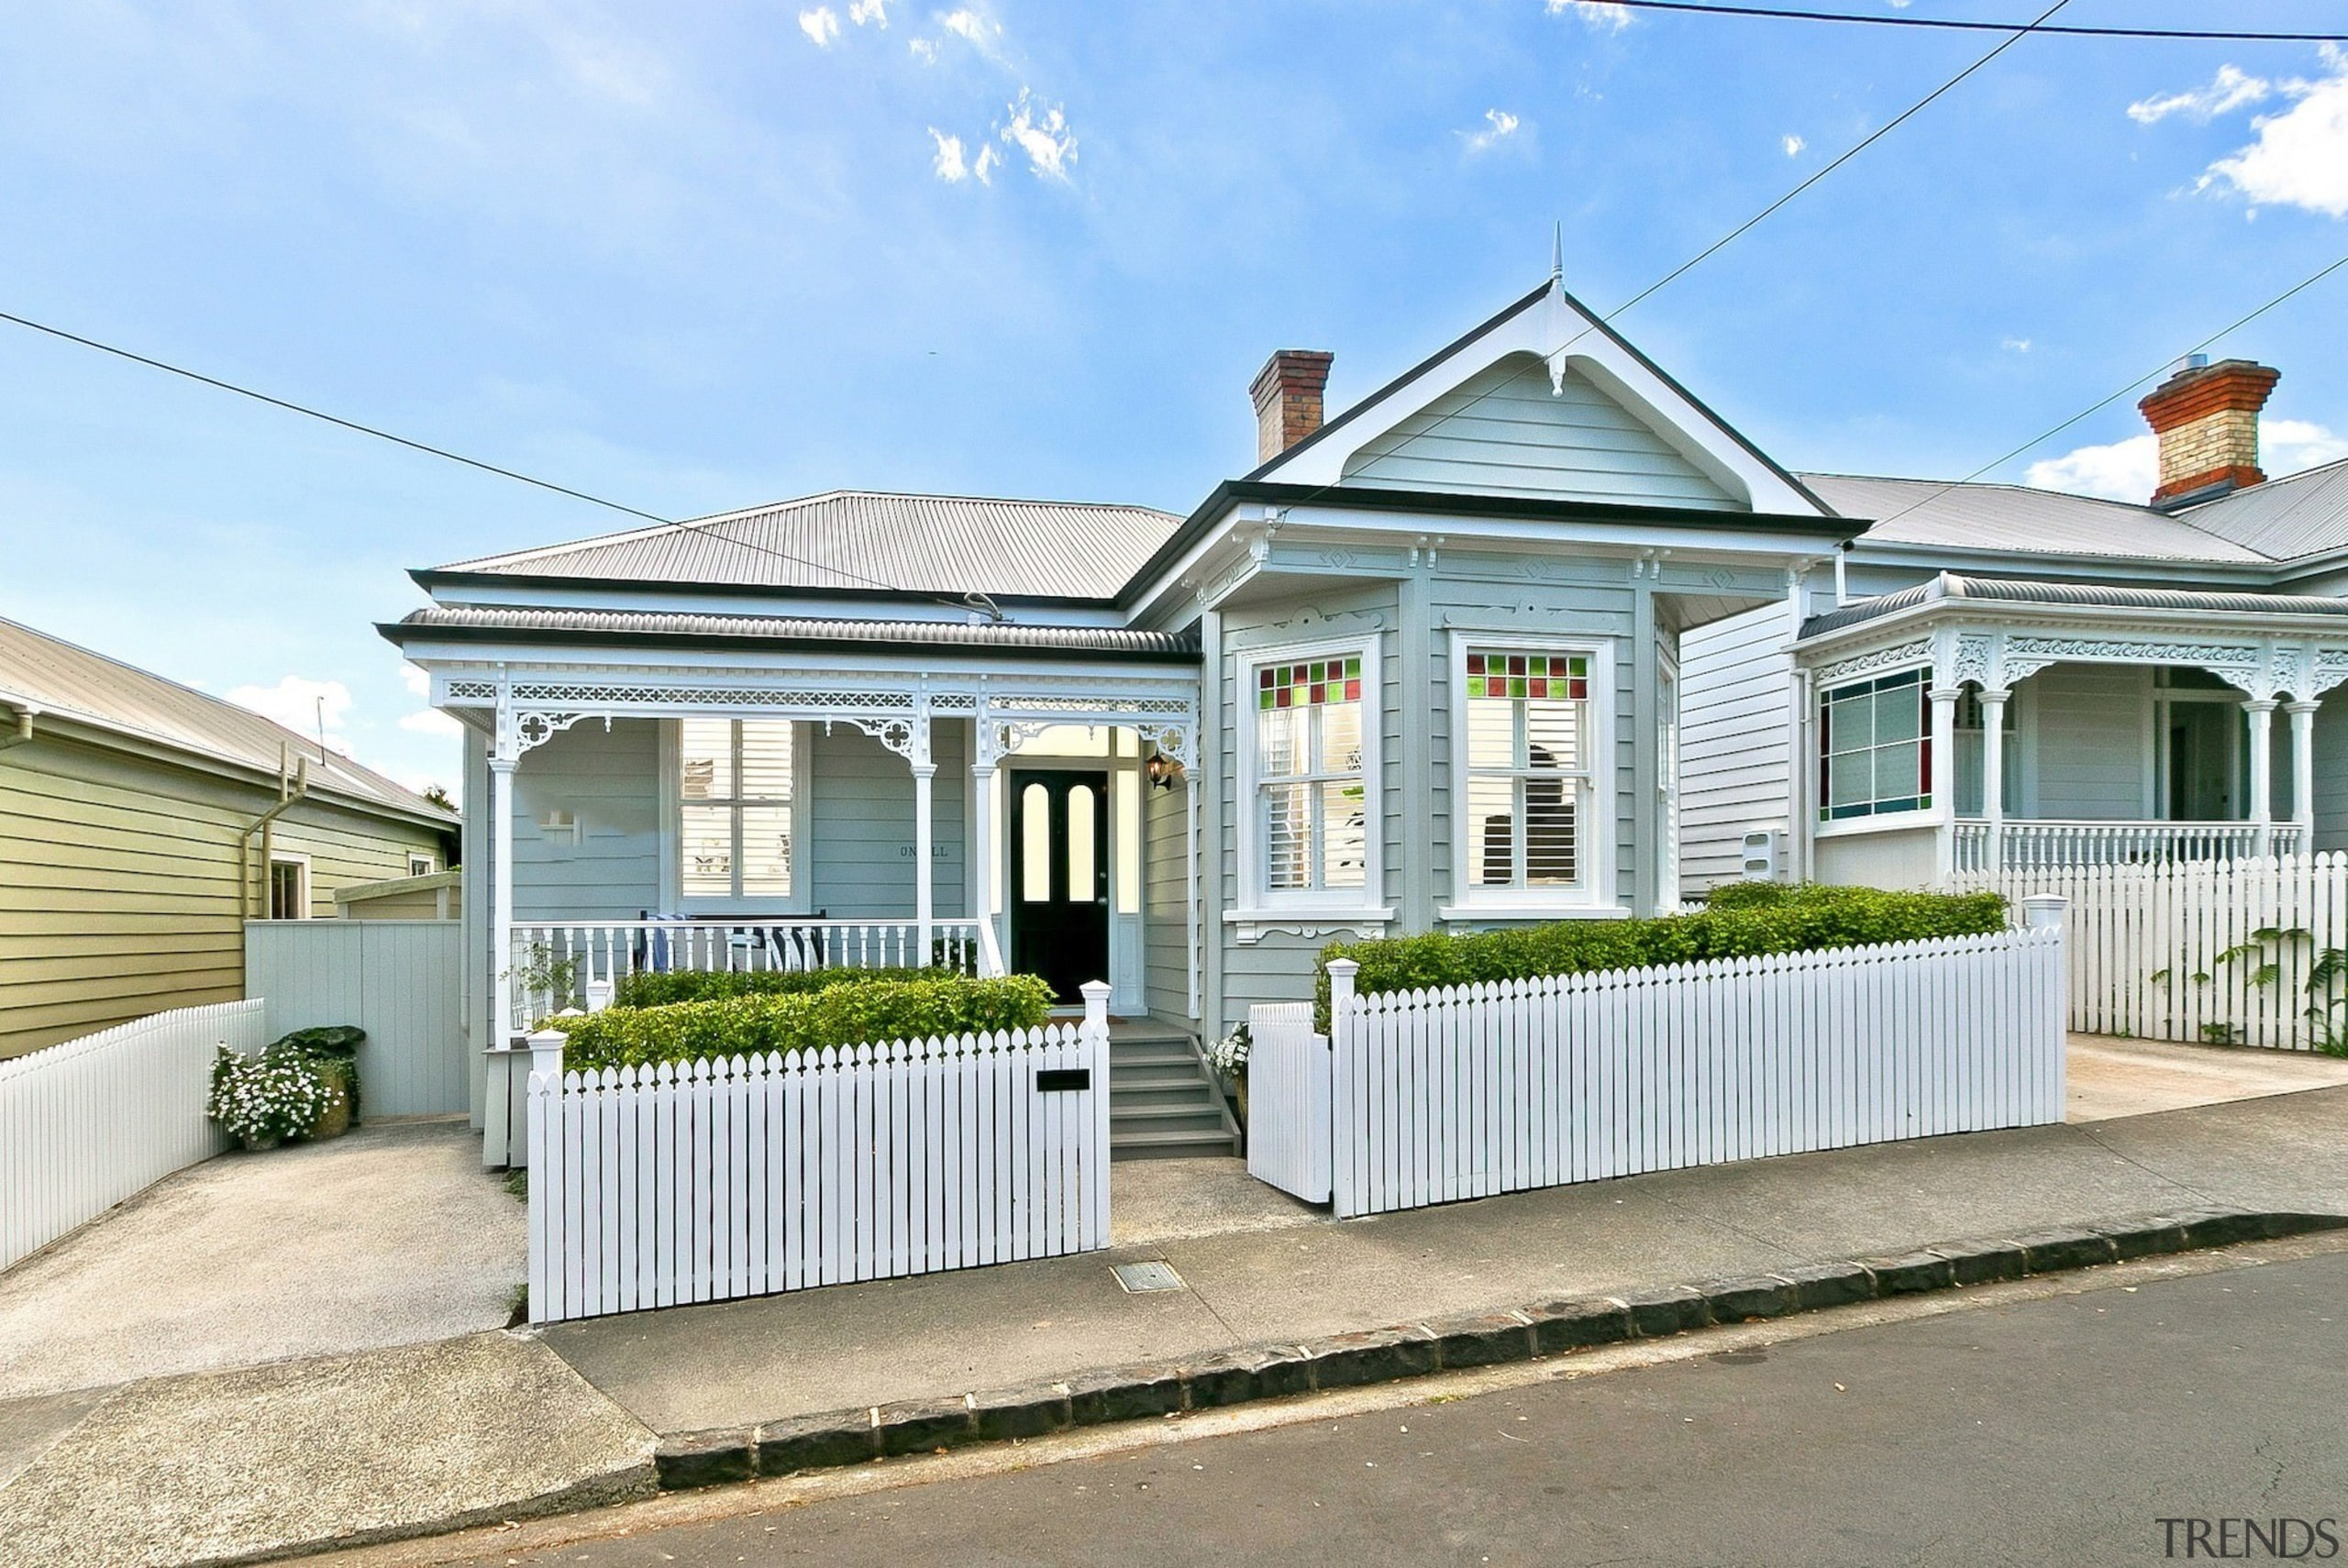 Allan McIntosh of Buildology for 17 O'Neill – cottage, estate, facade, home, house, neighbourhood, property, real estate, residential area, white